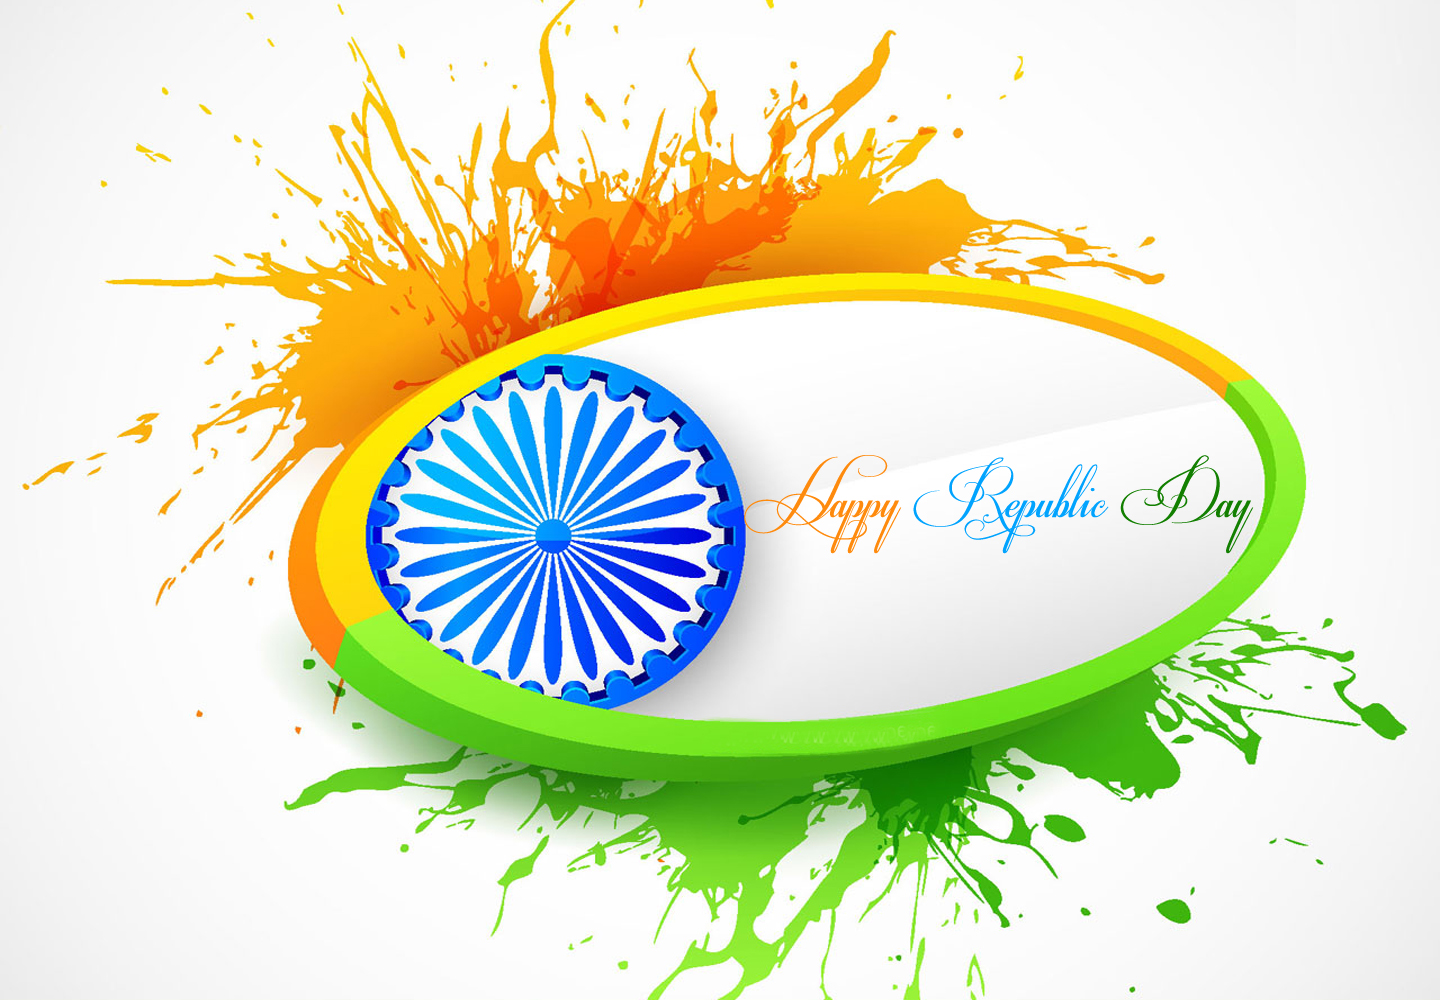 Wallpaper download new 2017 - Image Result For Republic Day 2017 Wallpapers